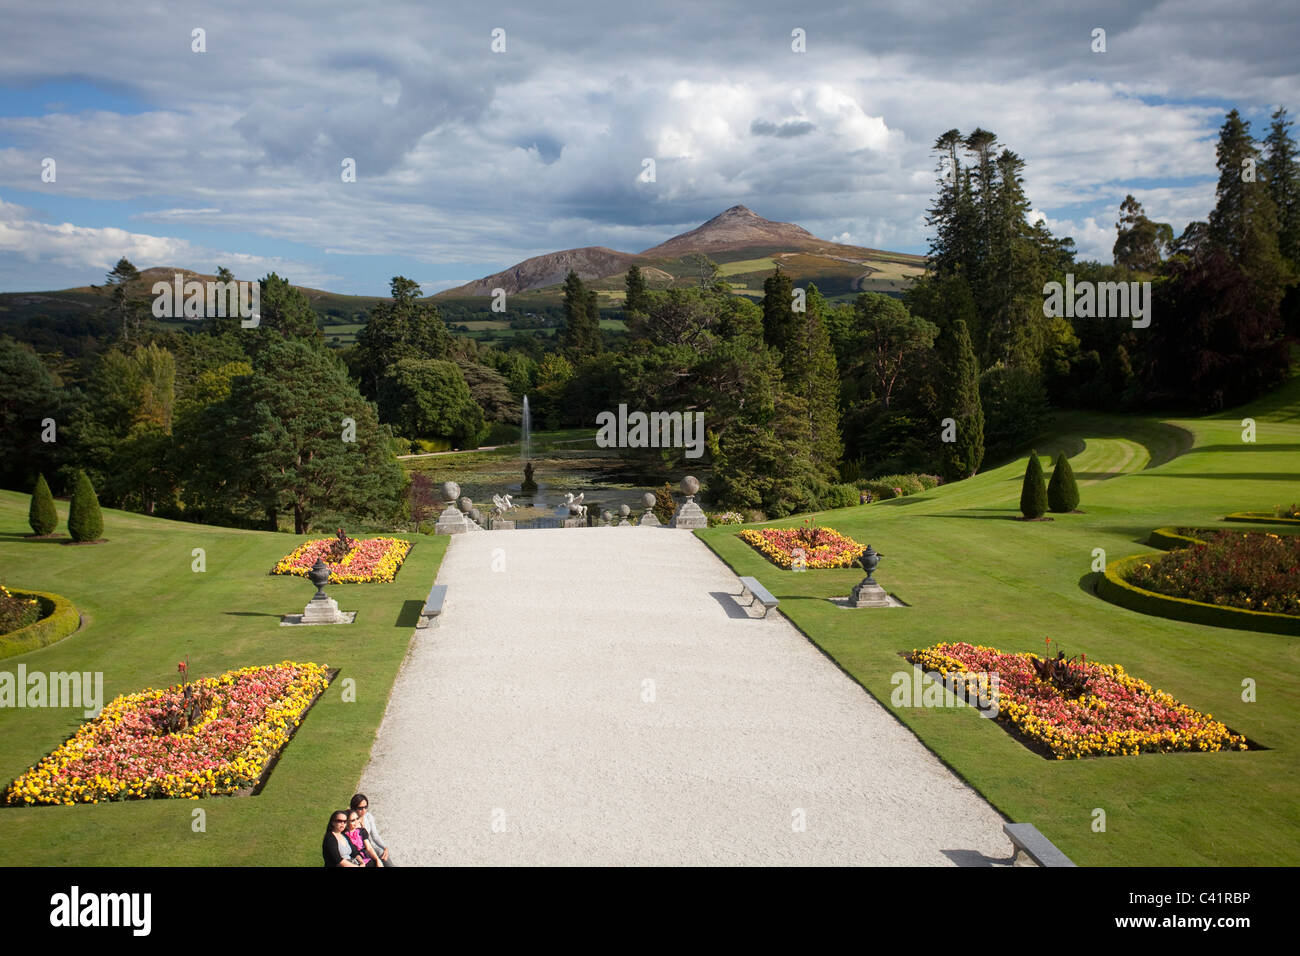 Great Sugarloaf Mountain rises above the gardens of Powerscourt House, Enniskerry, County Wicklow, Ireland. - Stock Image